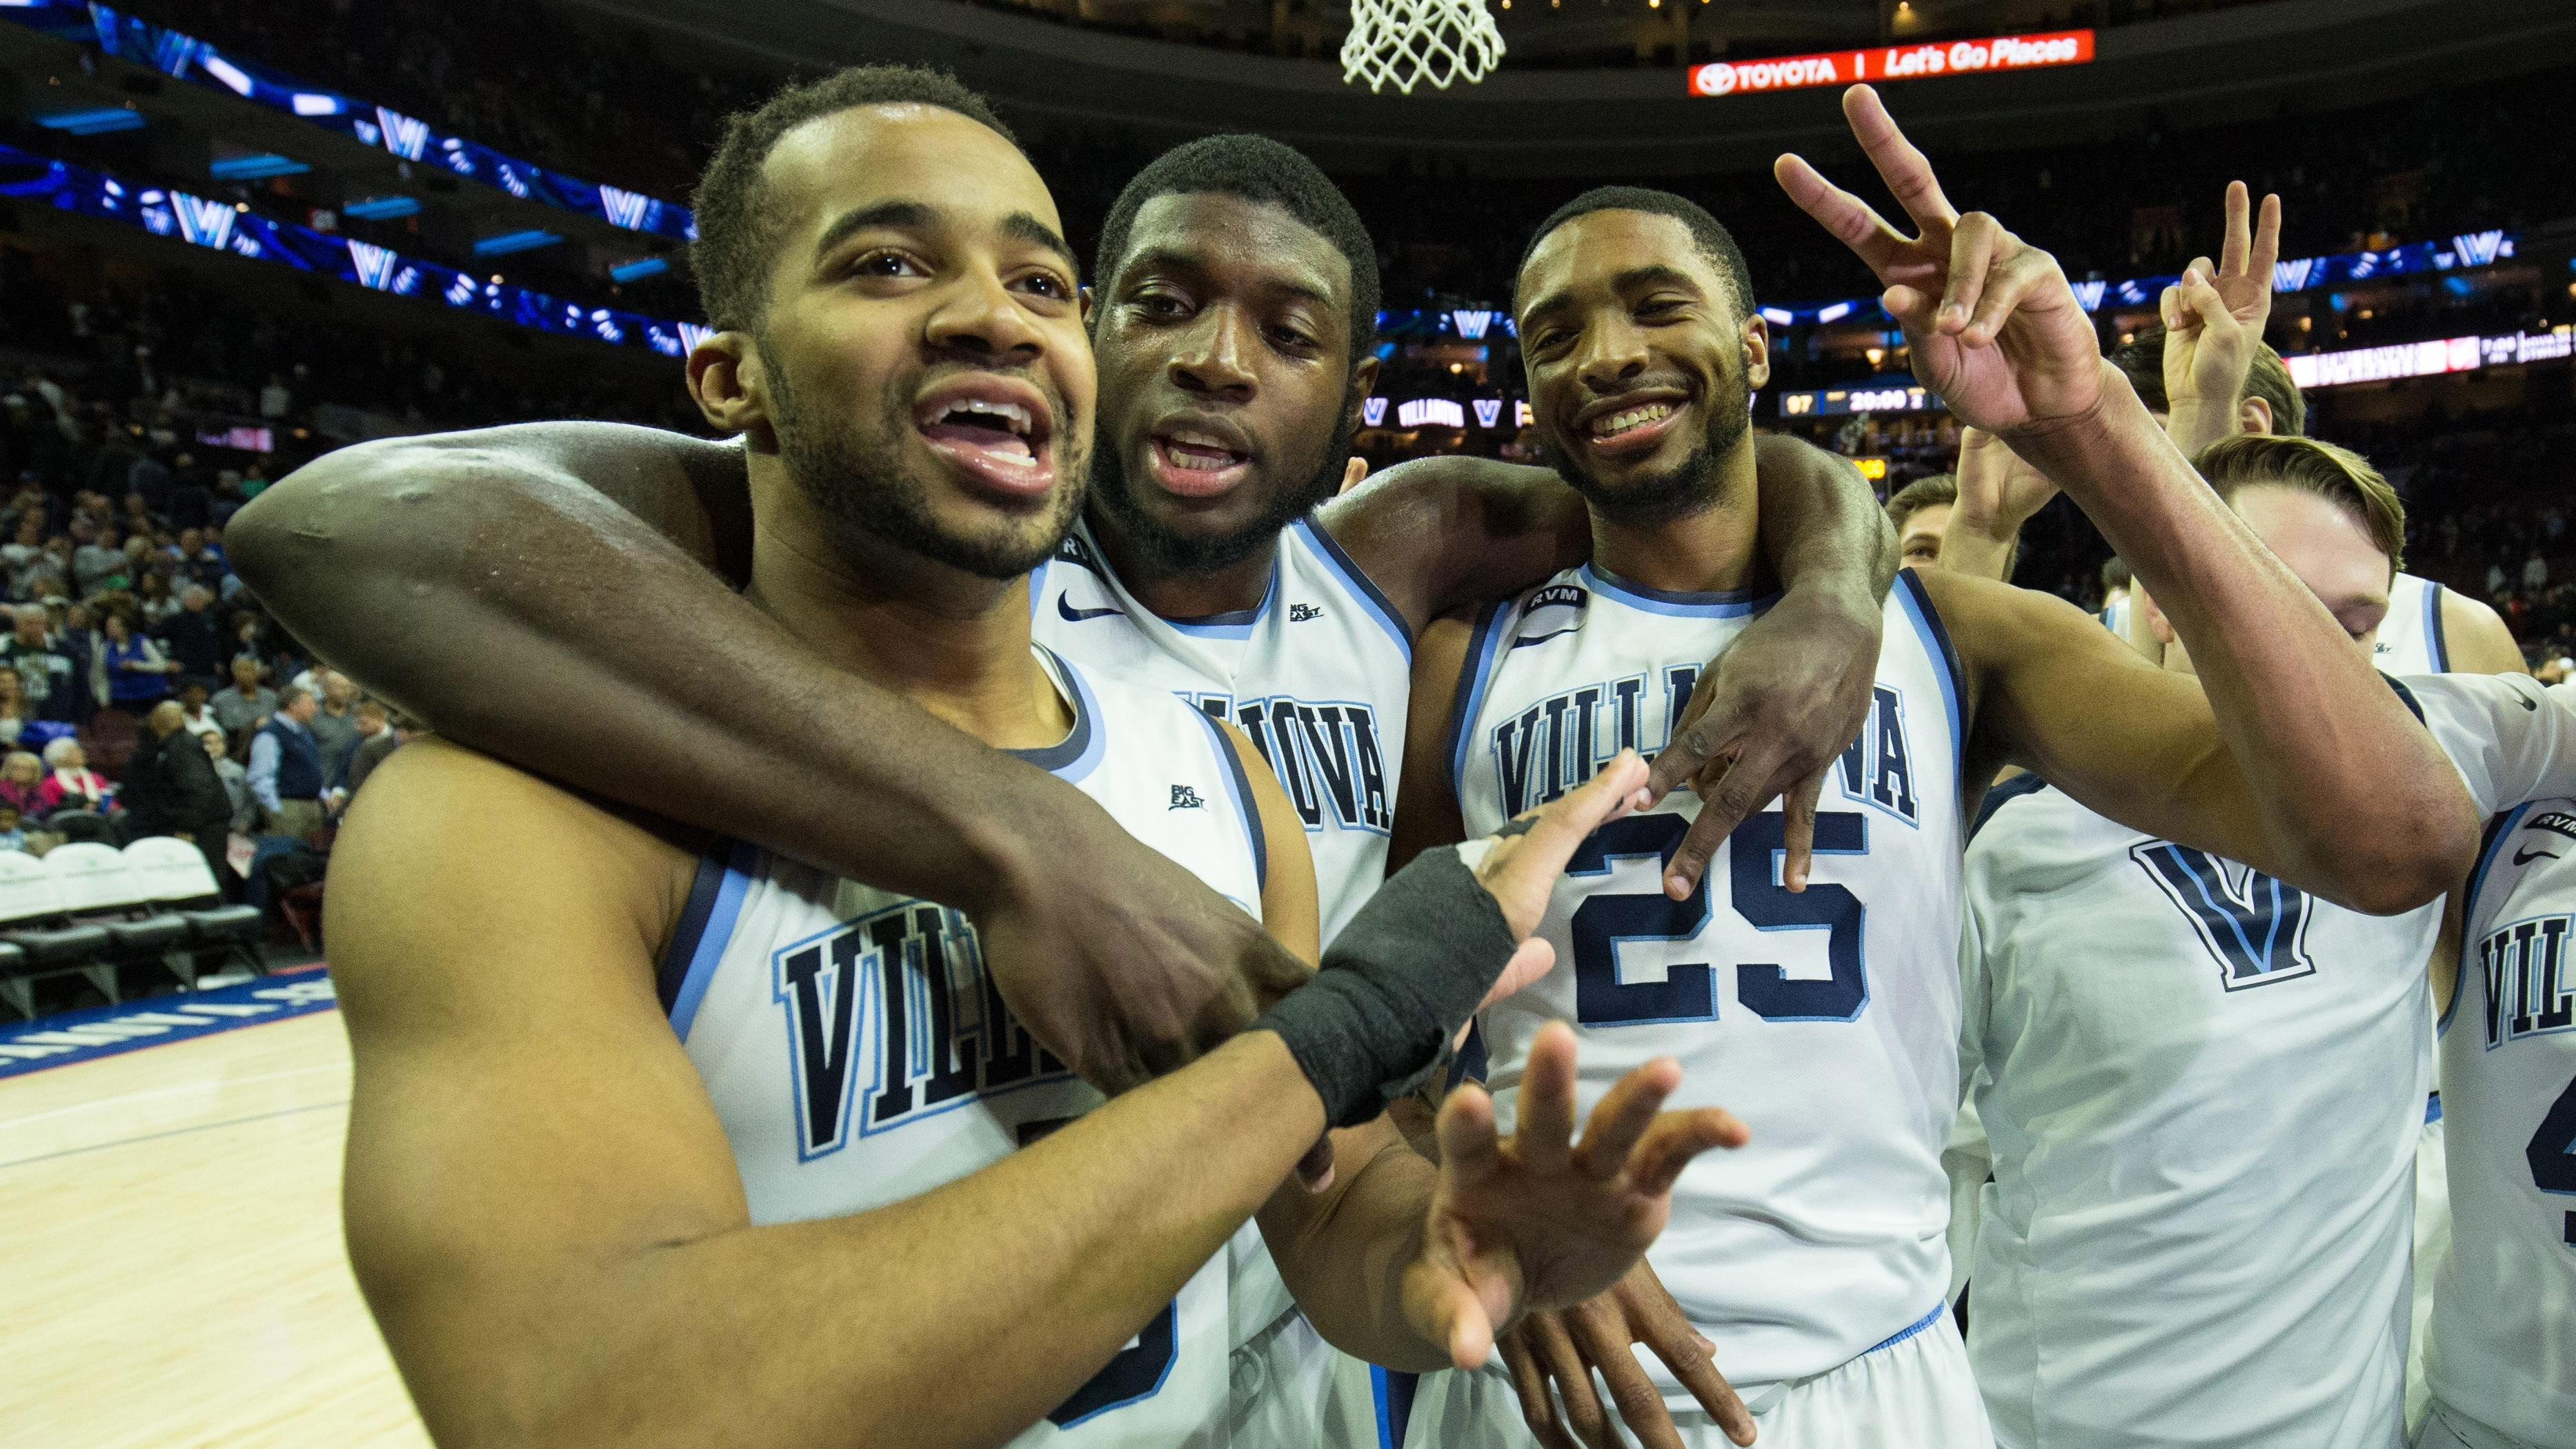 Villanova's Phil Booth and Eric Paschall